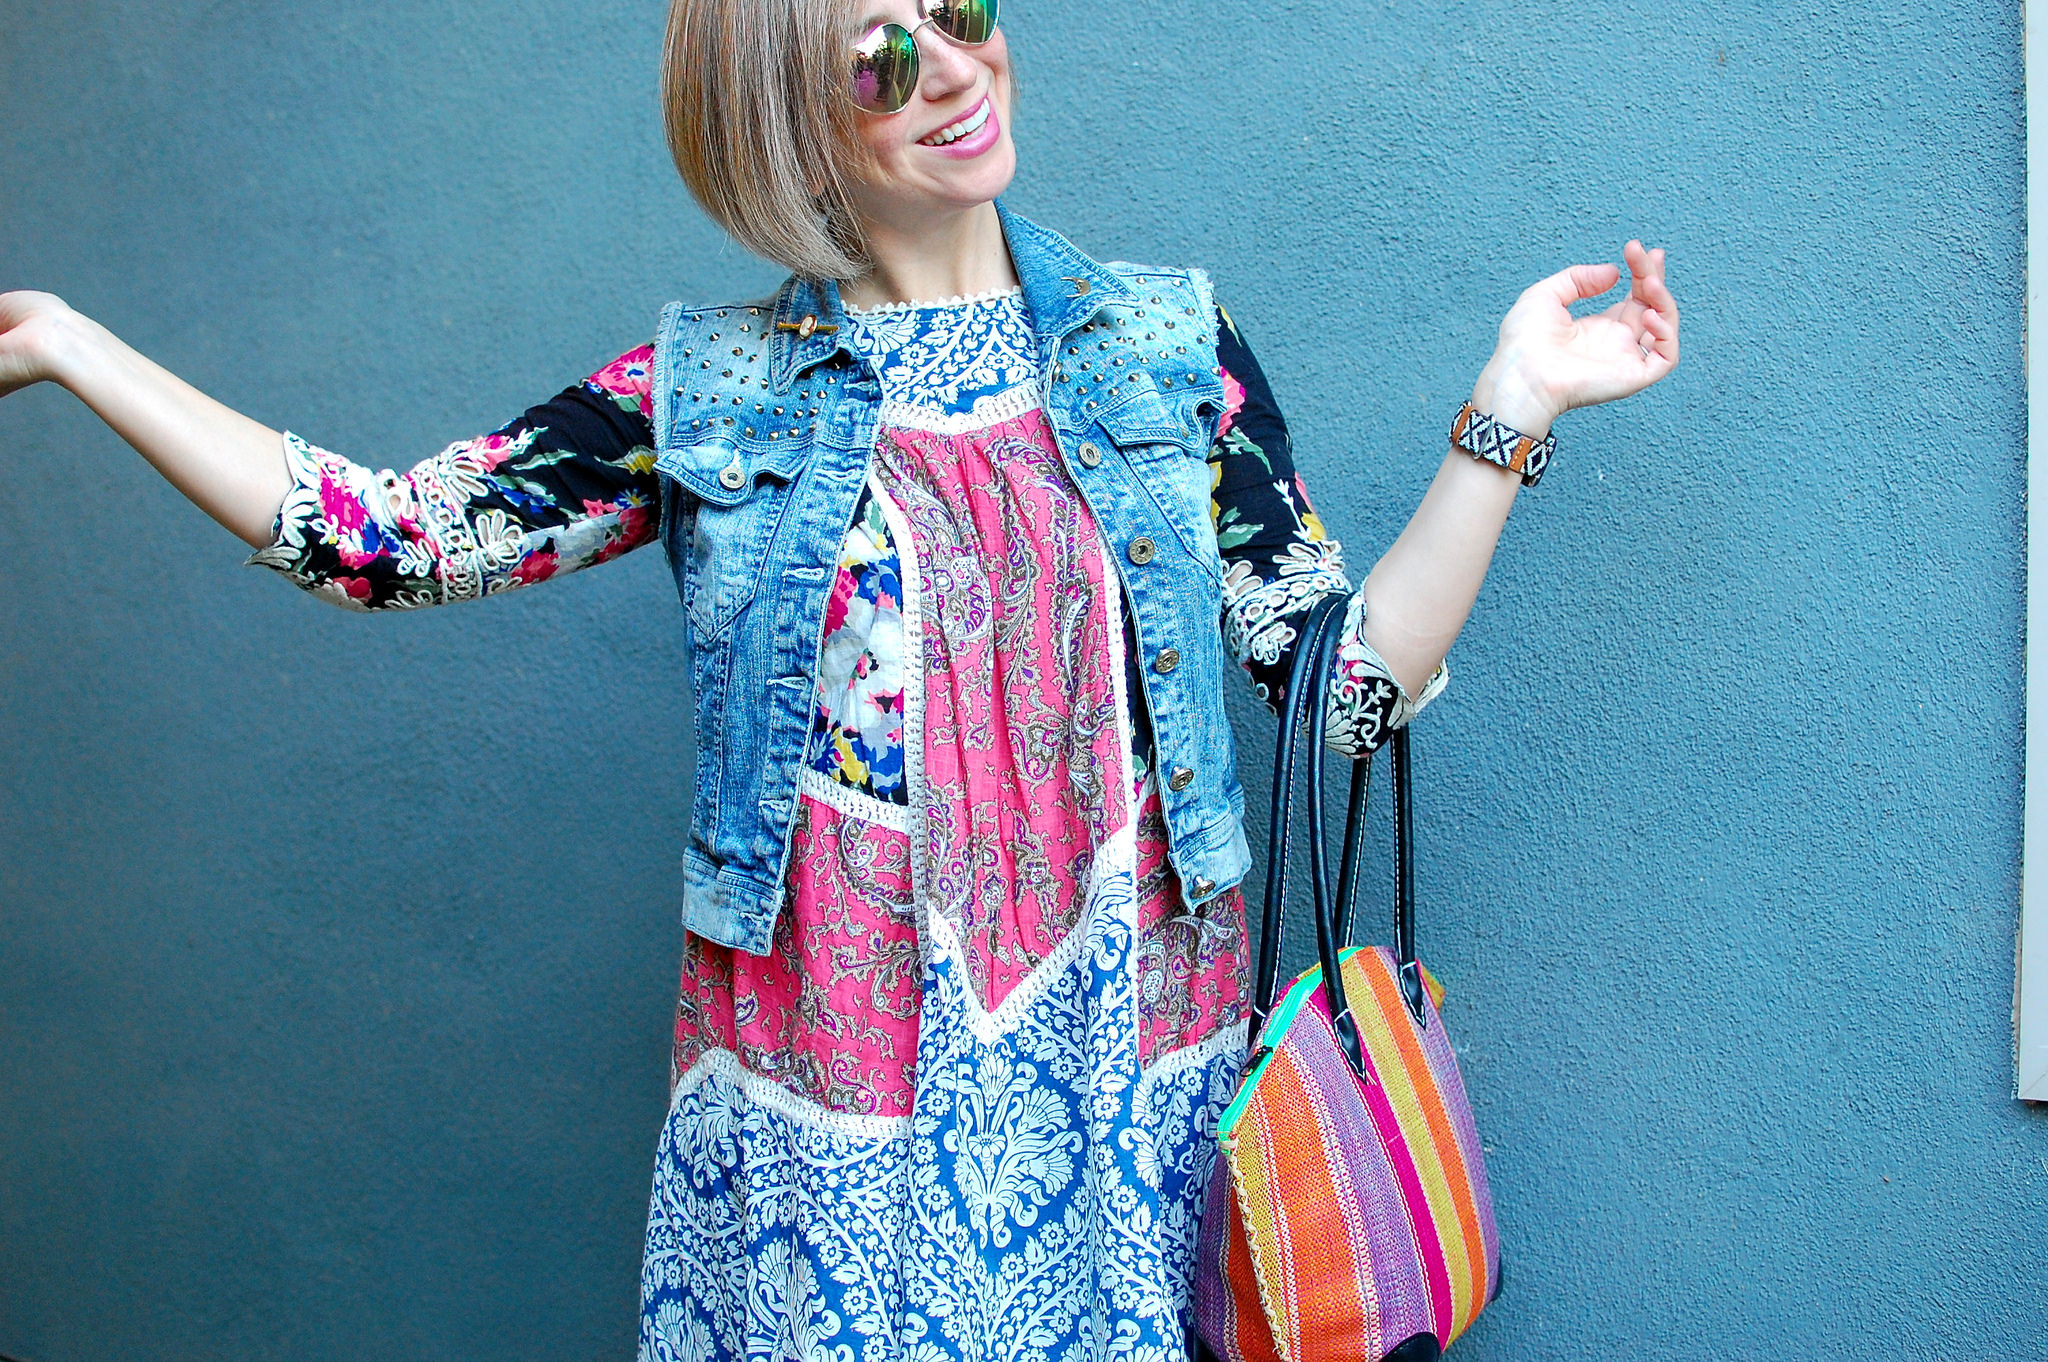 denim vest mexican dress outfit ootd whatiwore2day